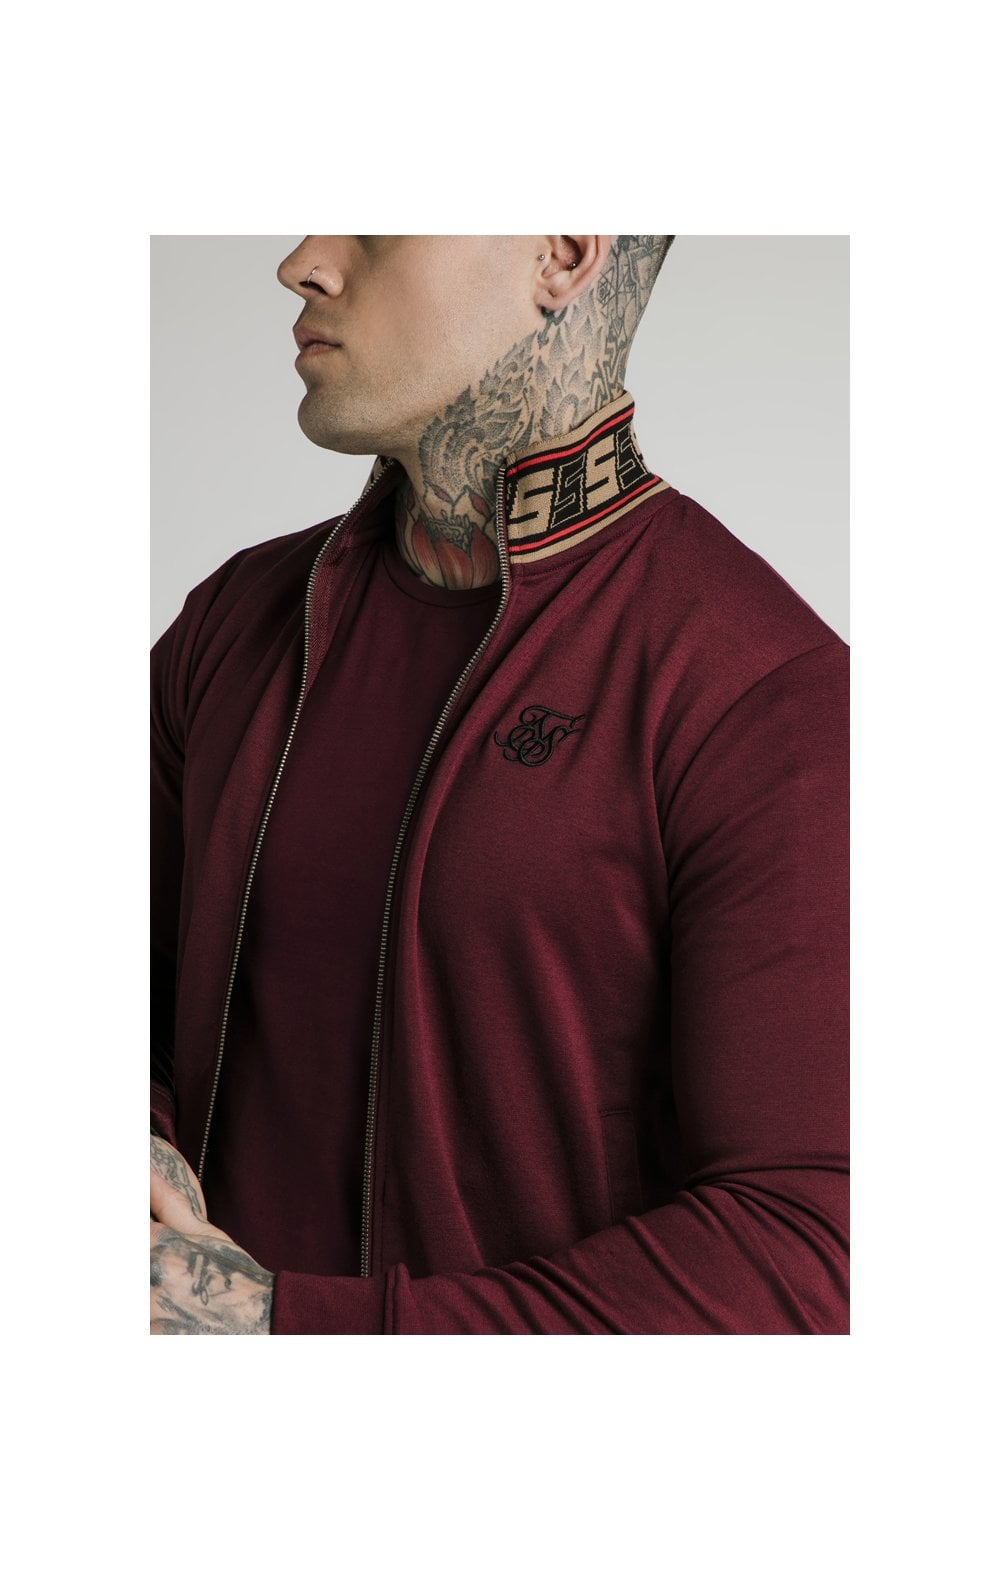 Load image into Gallery viewer, SikSilk Jacquard Retro Zip Through - Burgundy (1)